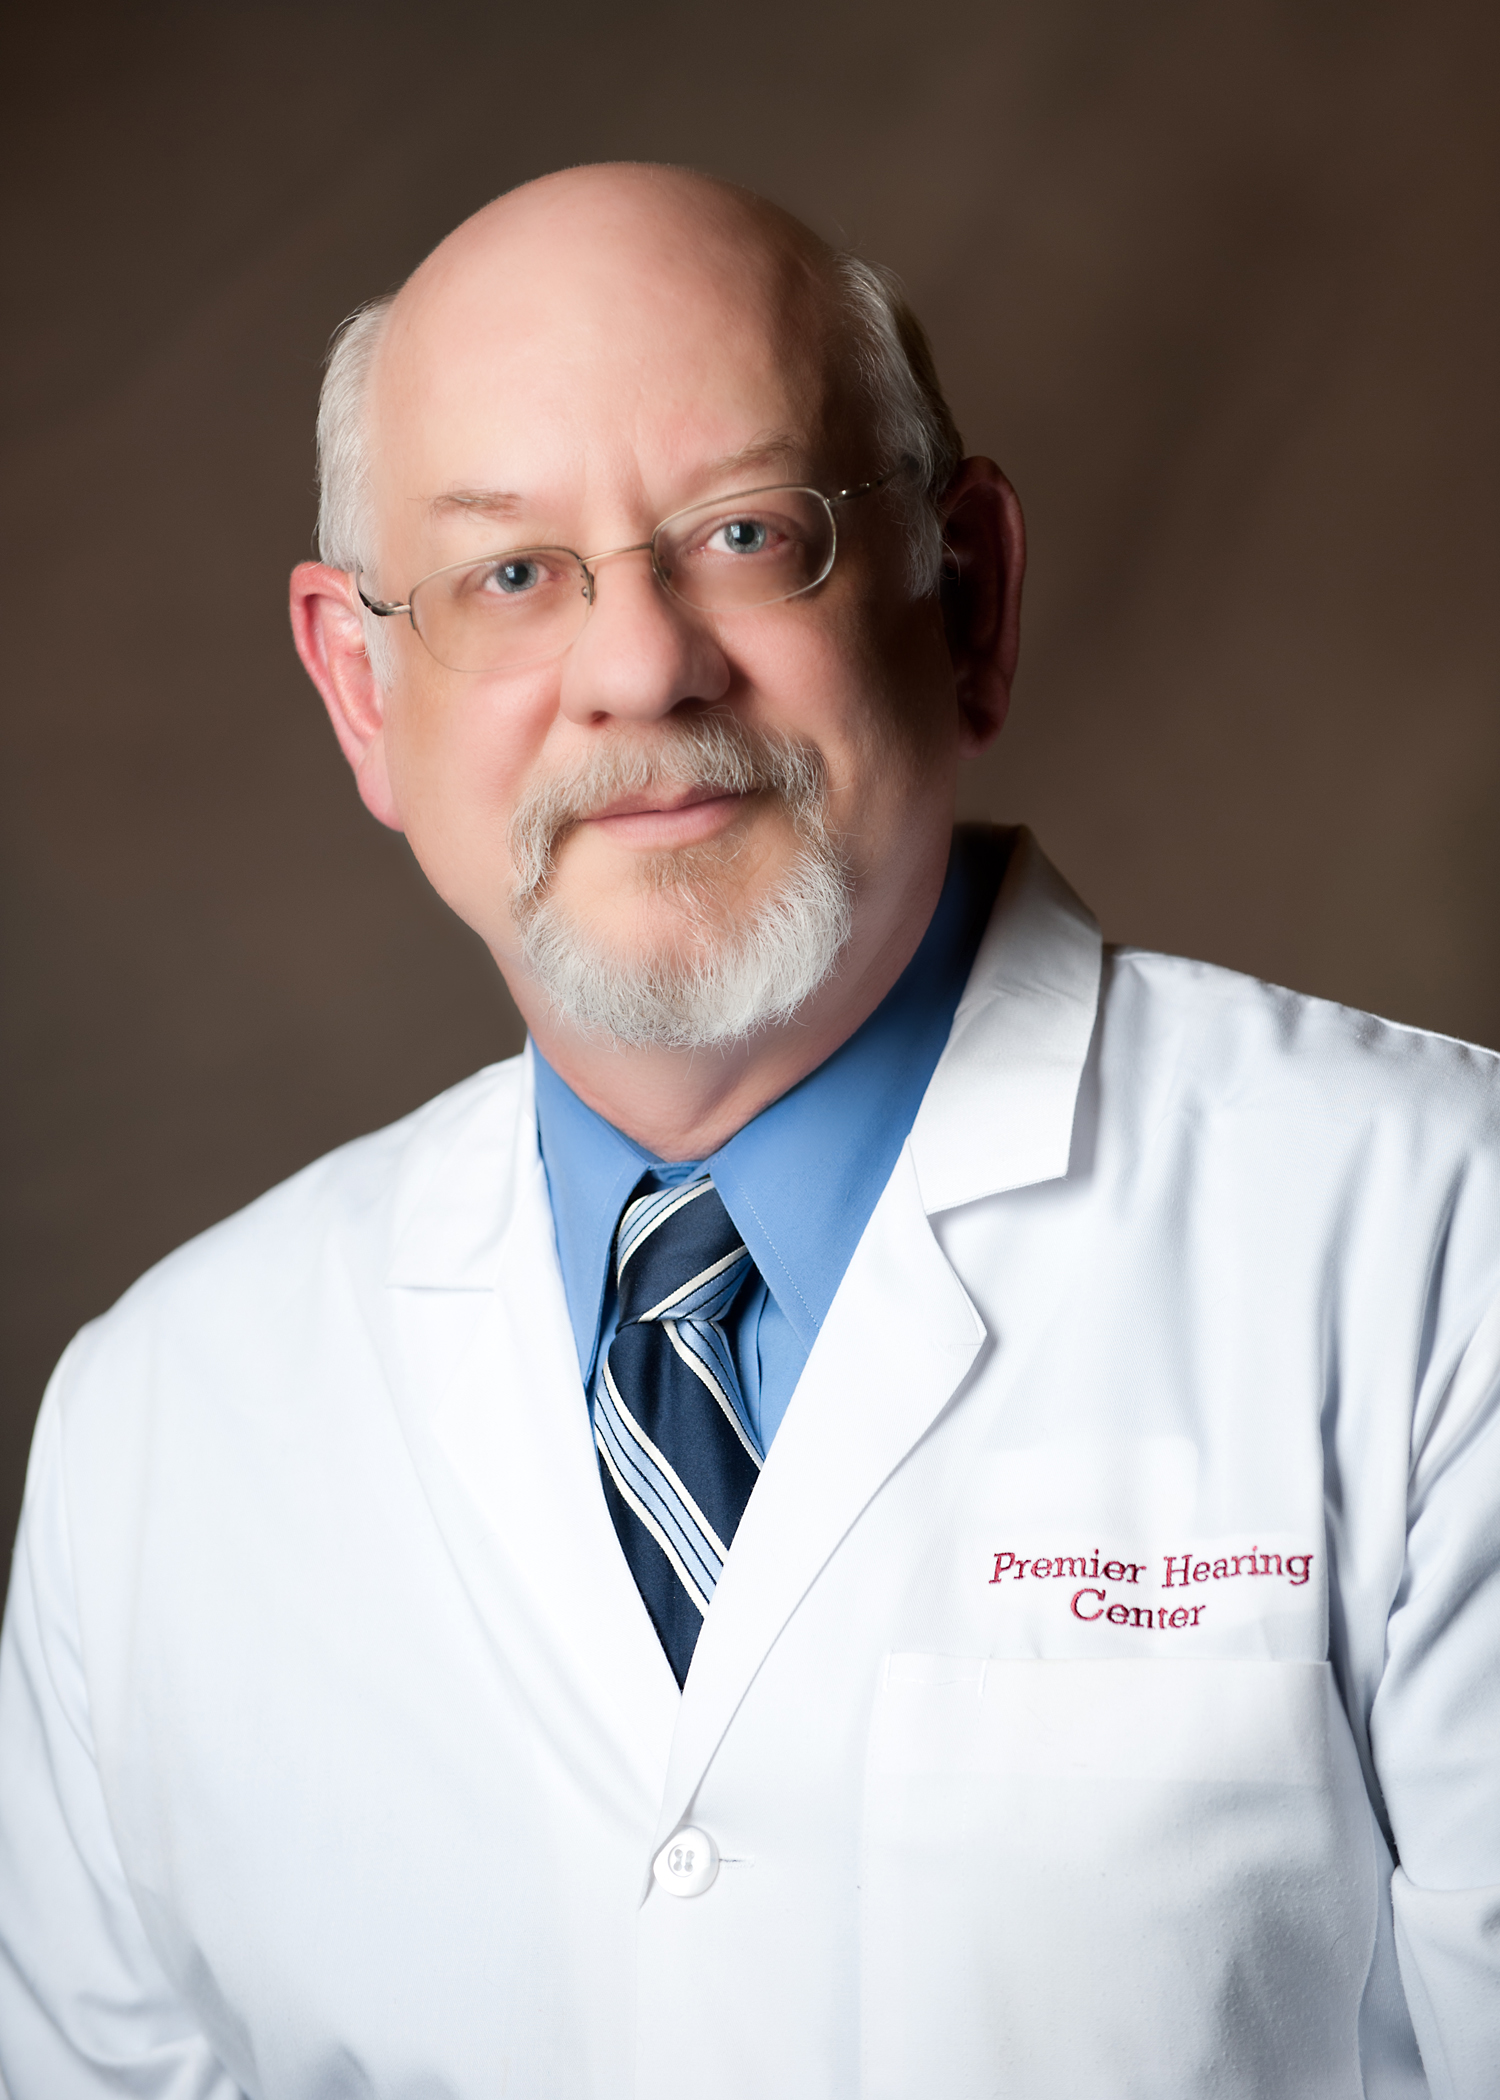 Dan Whitby, Hearing Instrument Specialist